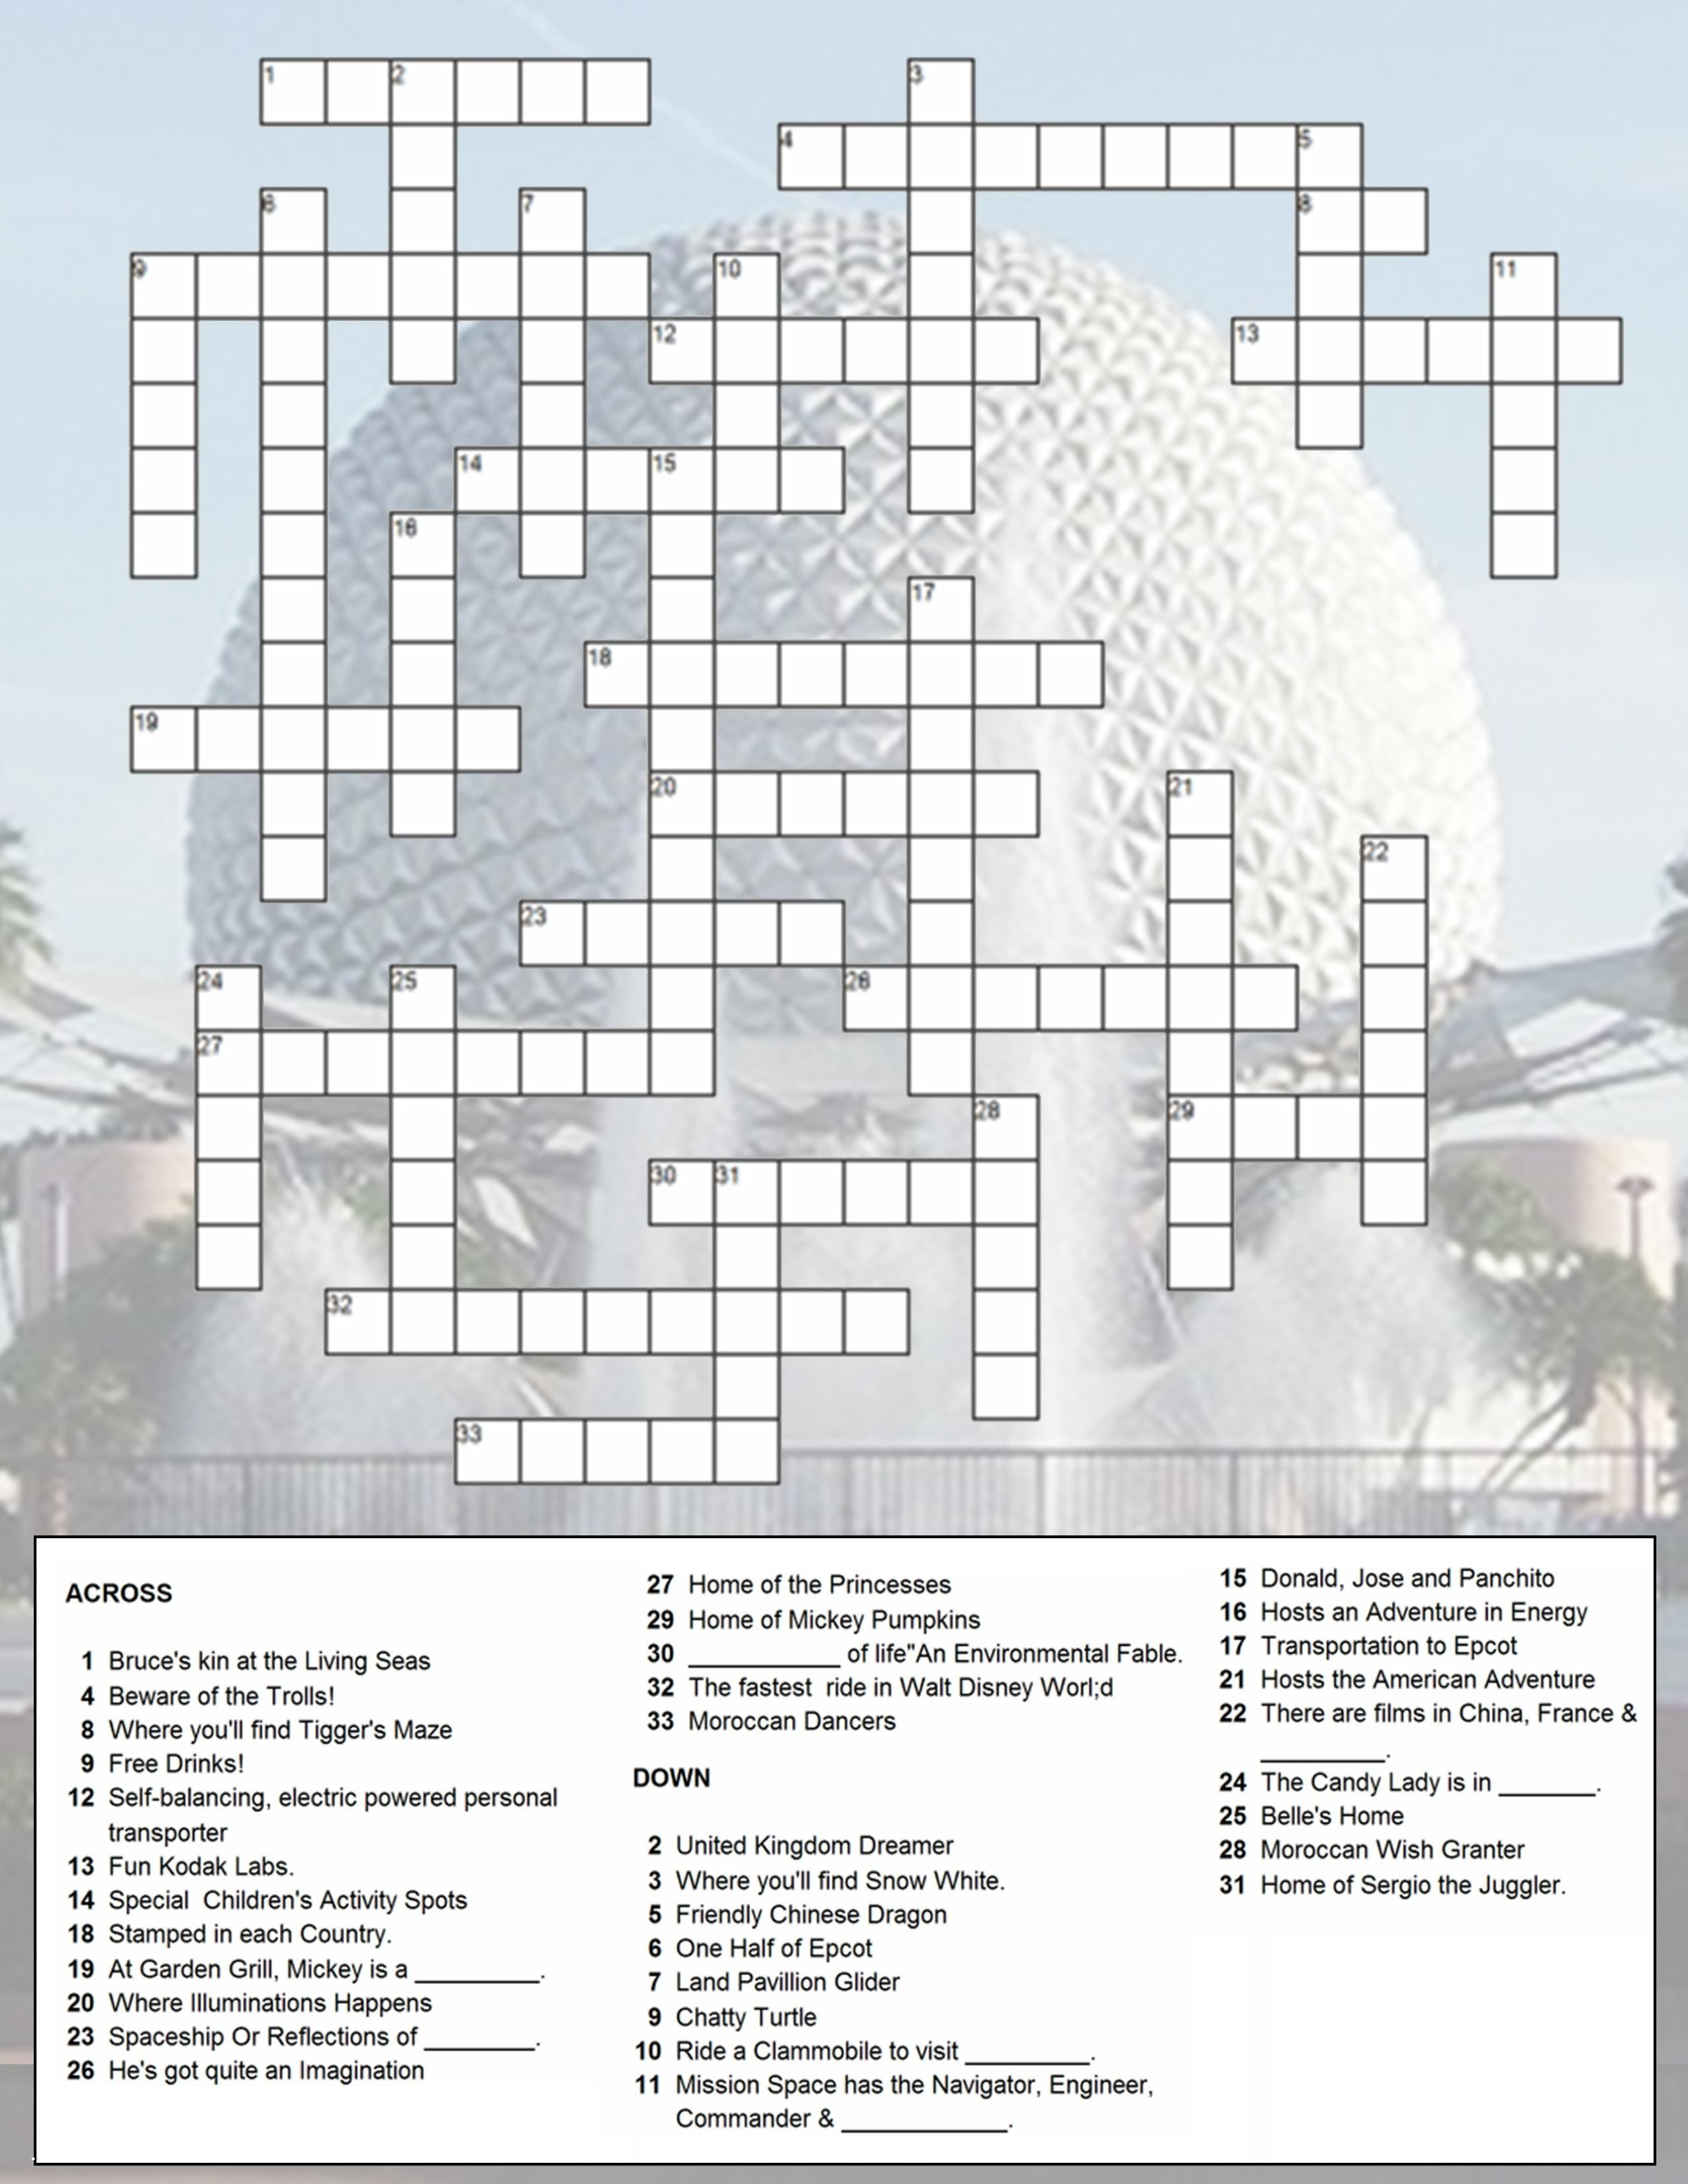 Epcot Crossword Puzzle | Just Because You Have A Fast Passdoesn't - Disney Crossword Puzzles Printable